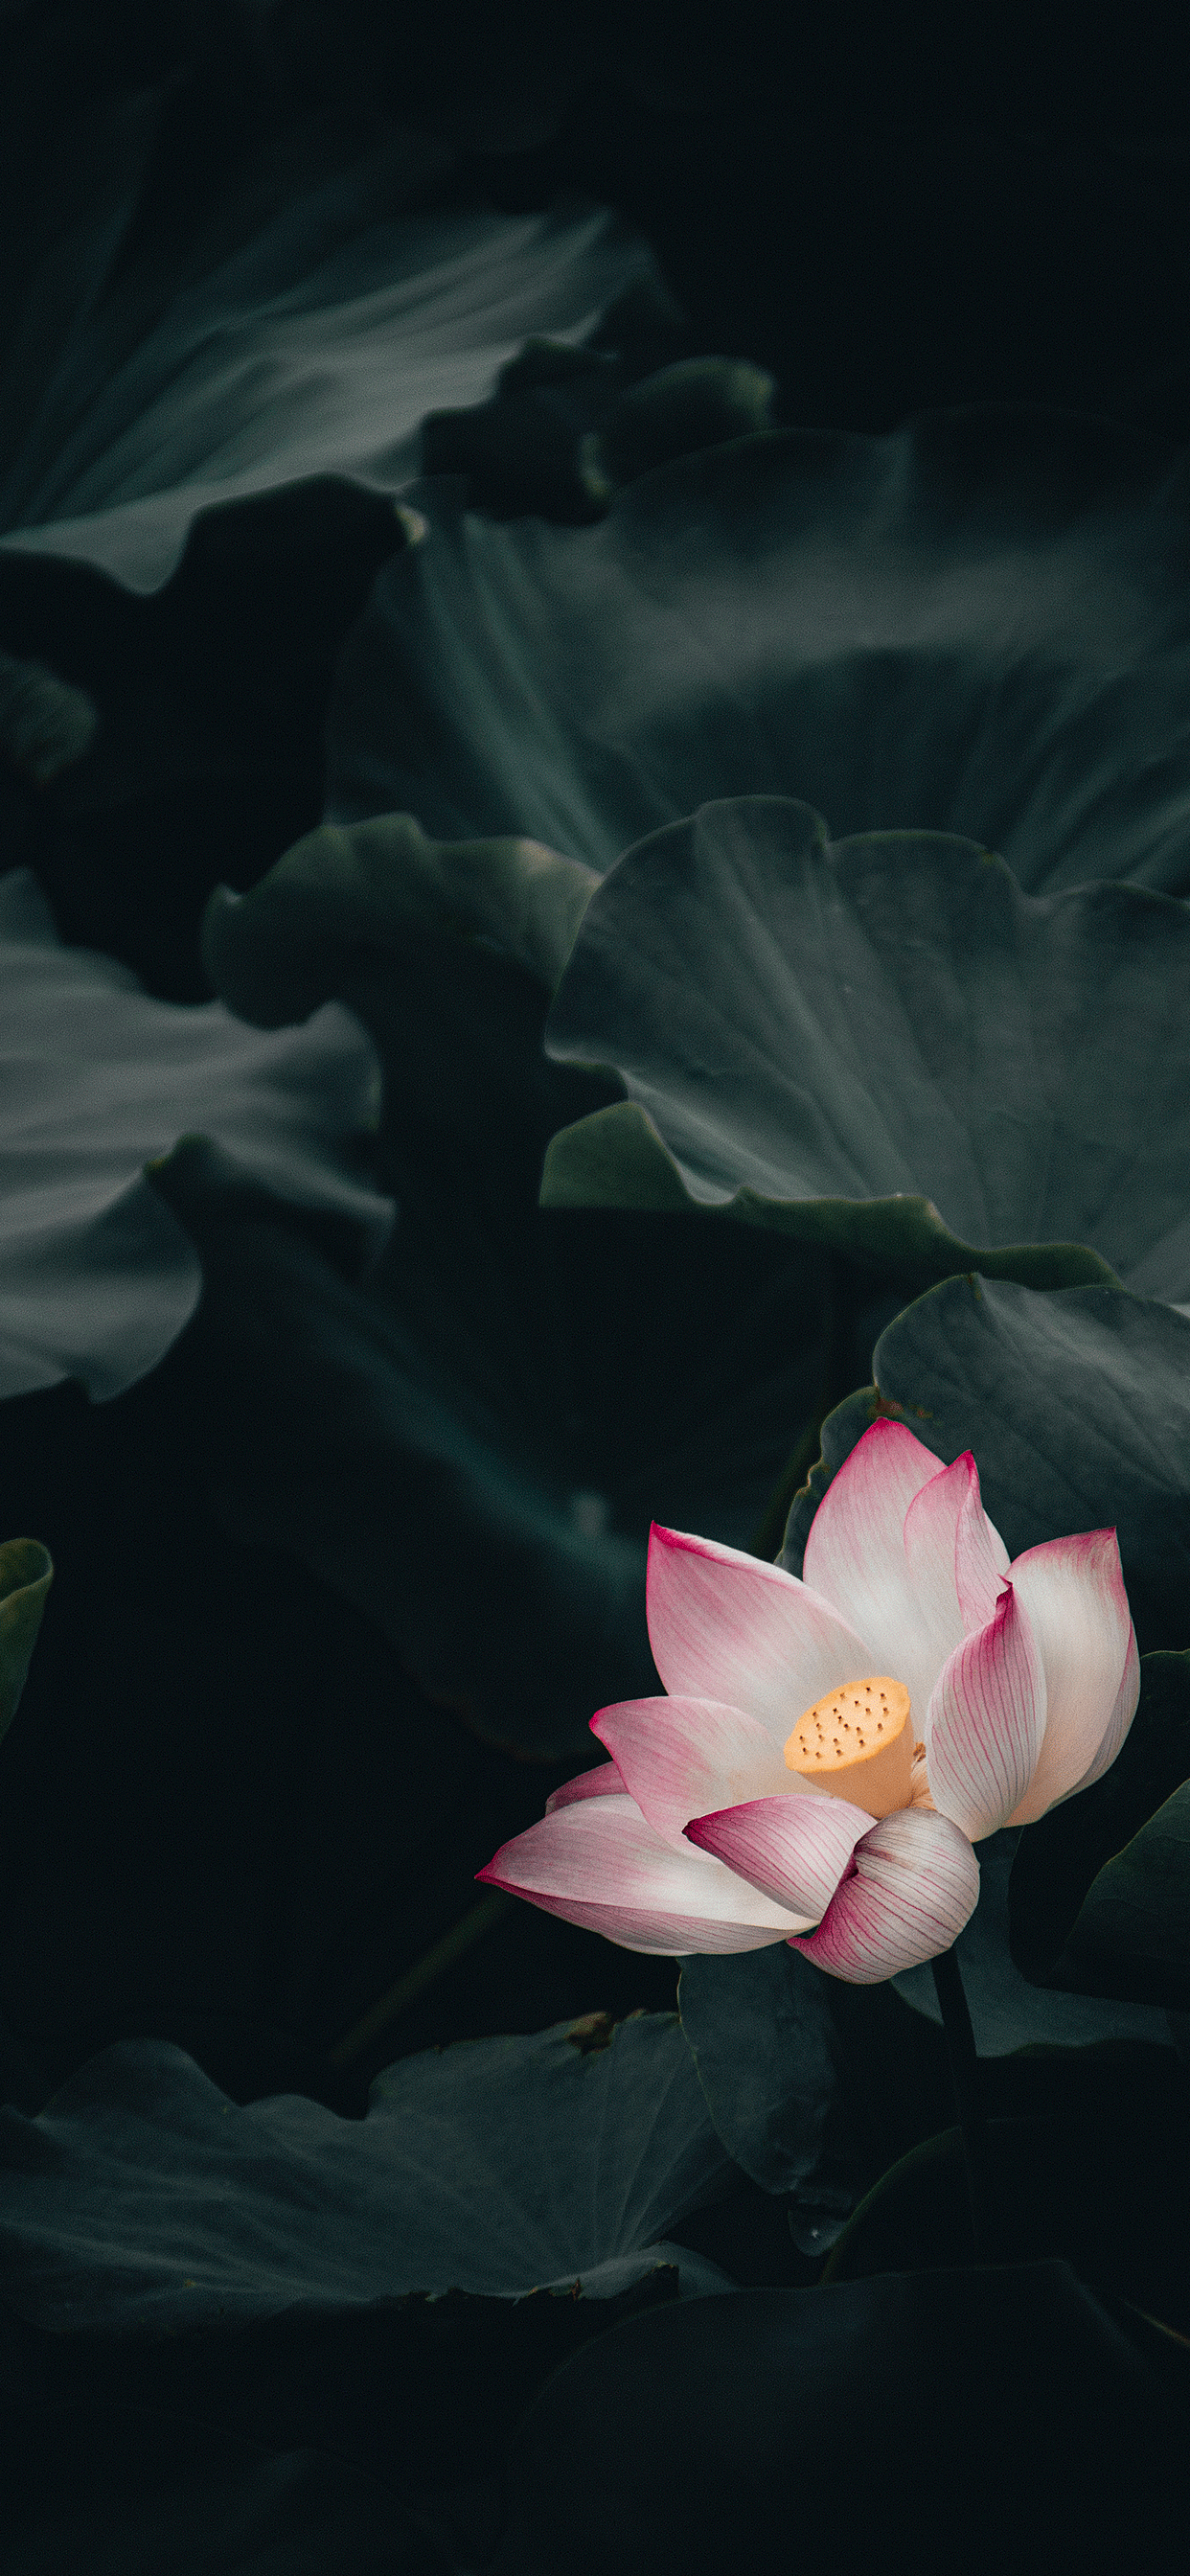 iPhone wallpaper lotus flower Fonds d'écran iPhone du 29/10/2018